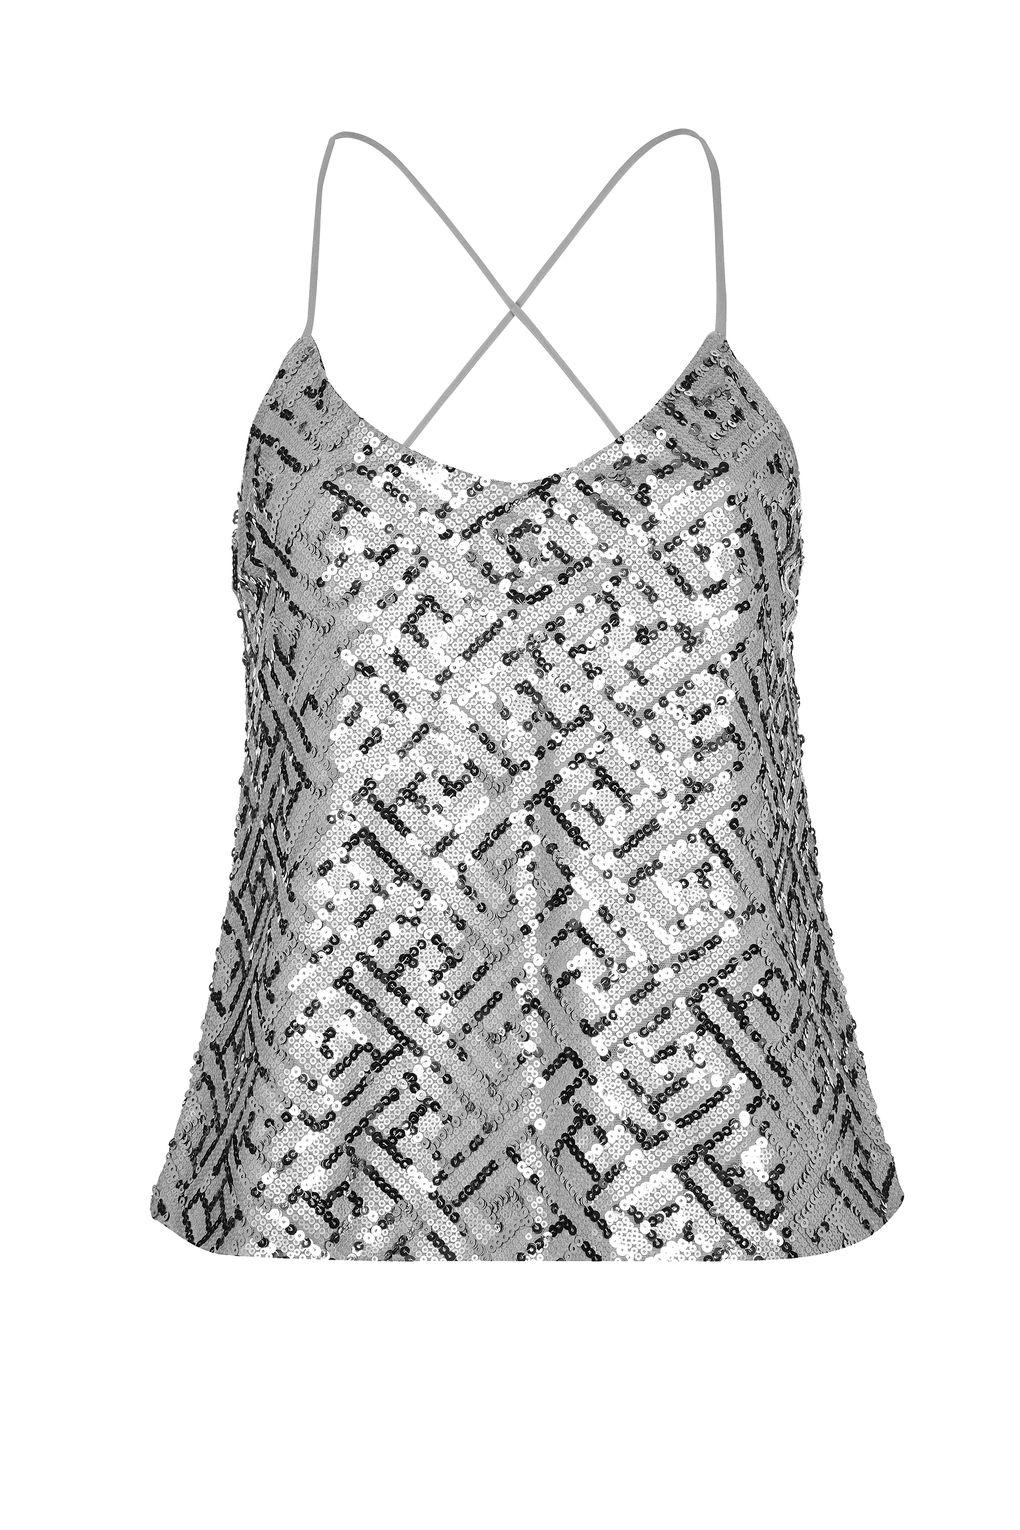 Lyst - Wyldr Wise Up Silver Sequin Camisole Top By in Metallic